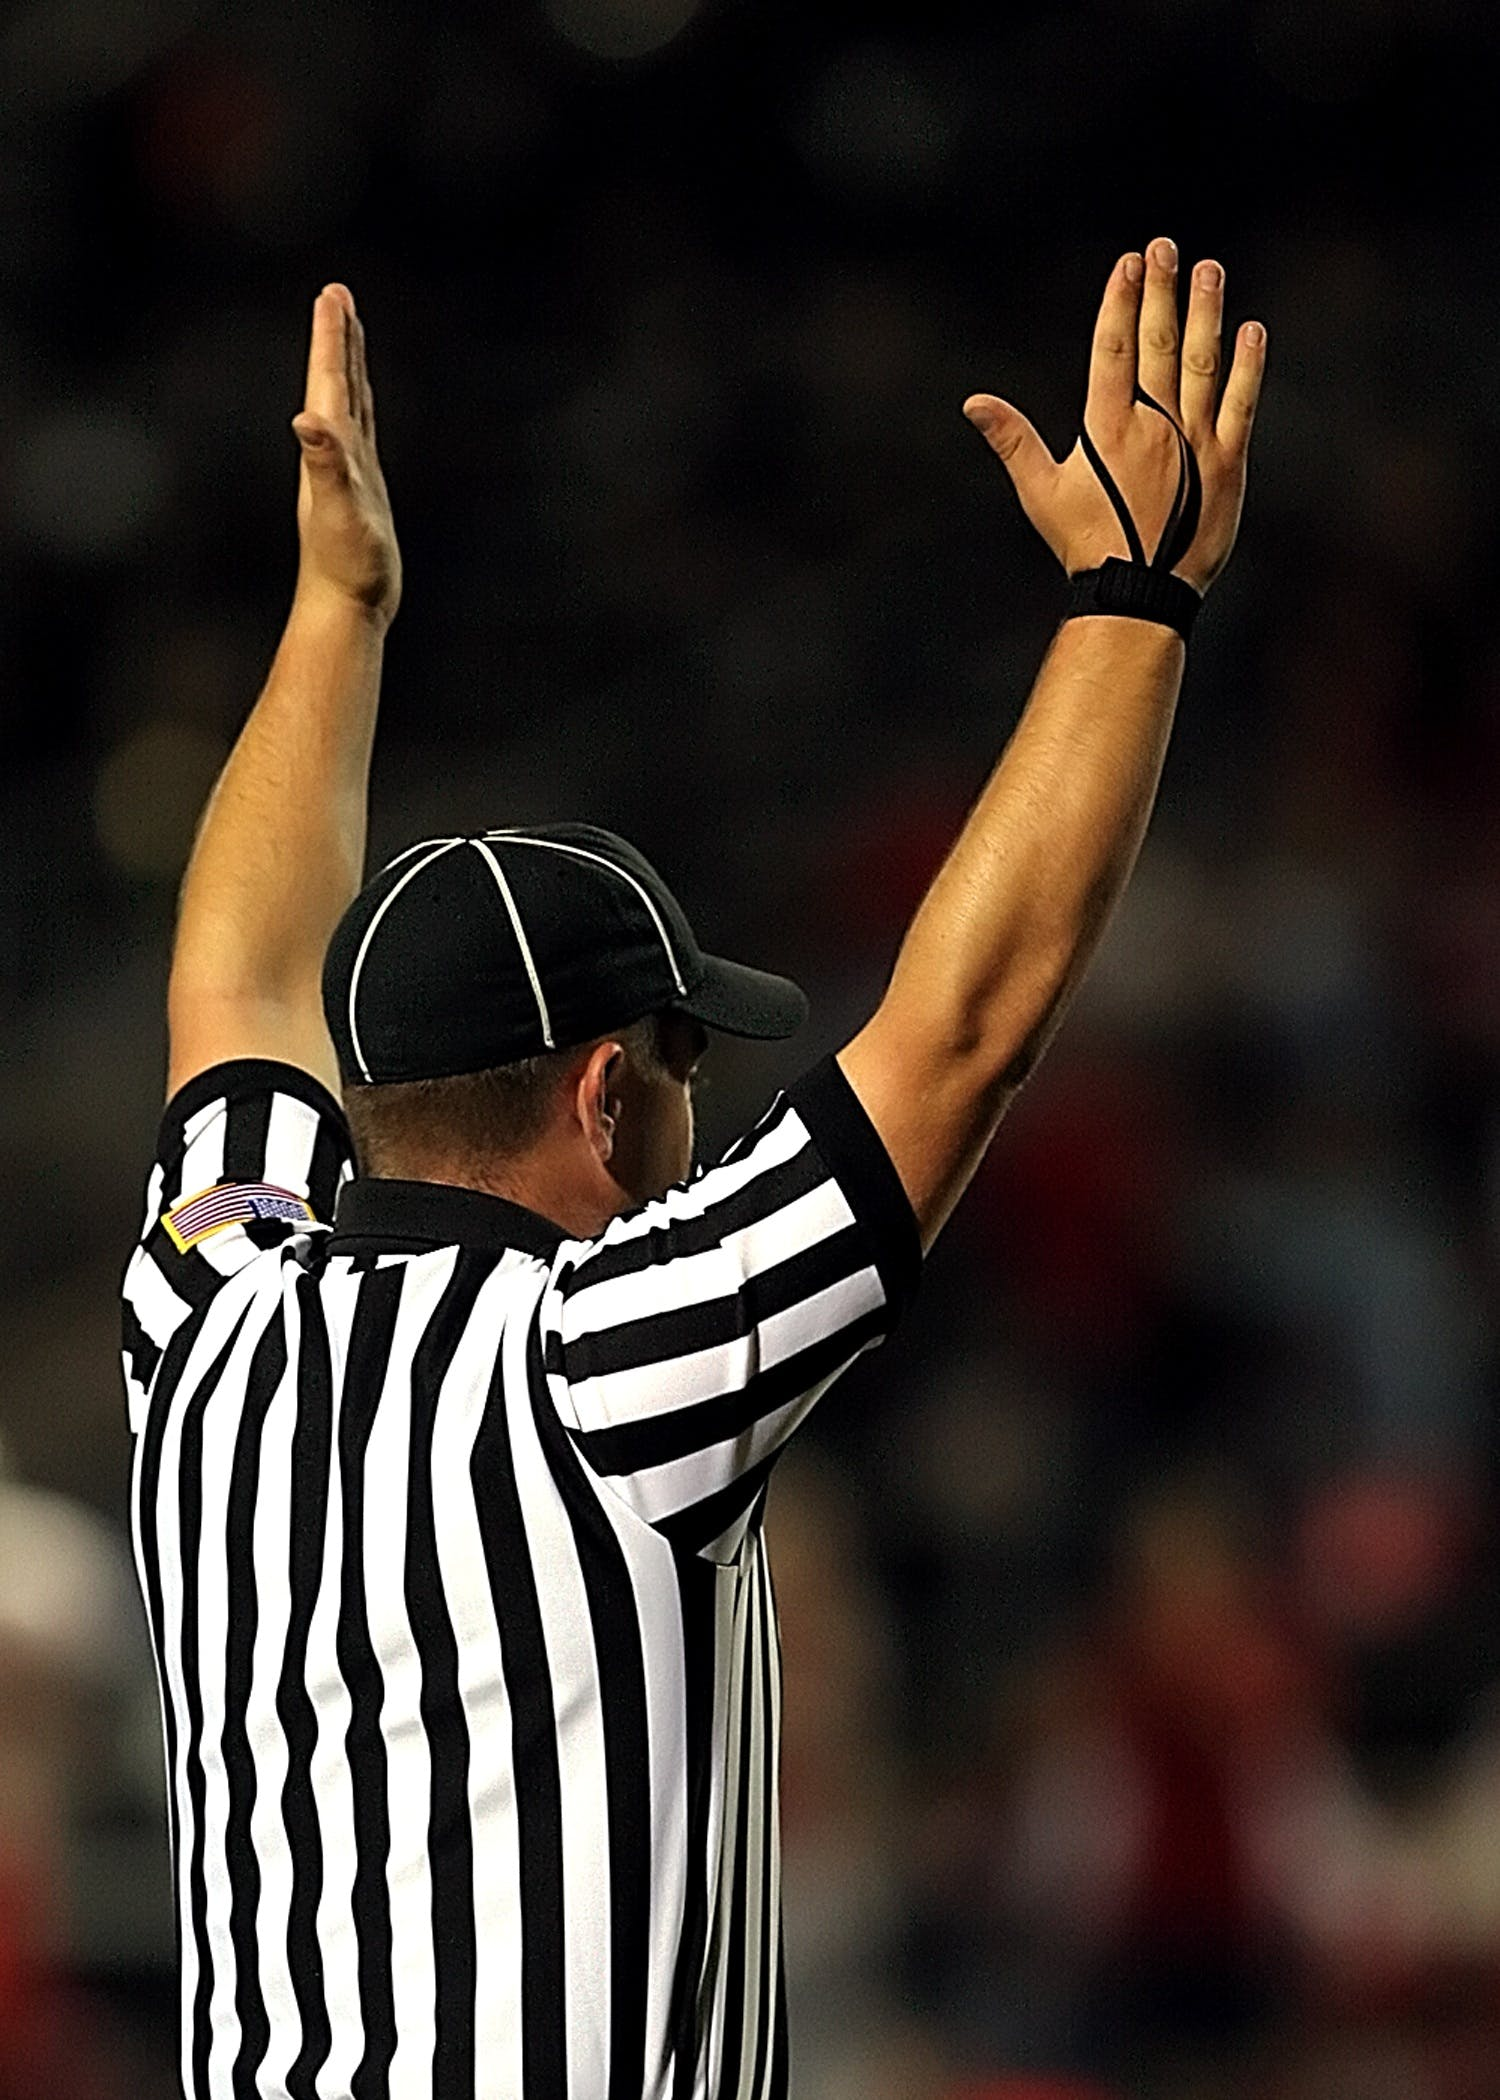 Referee Raising Both Hands